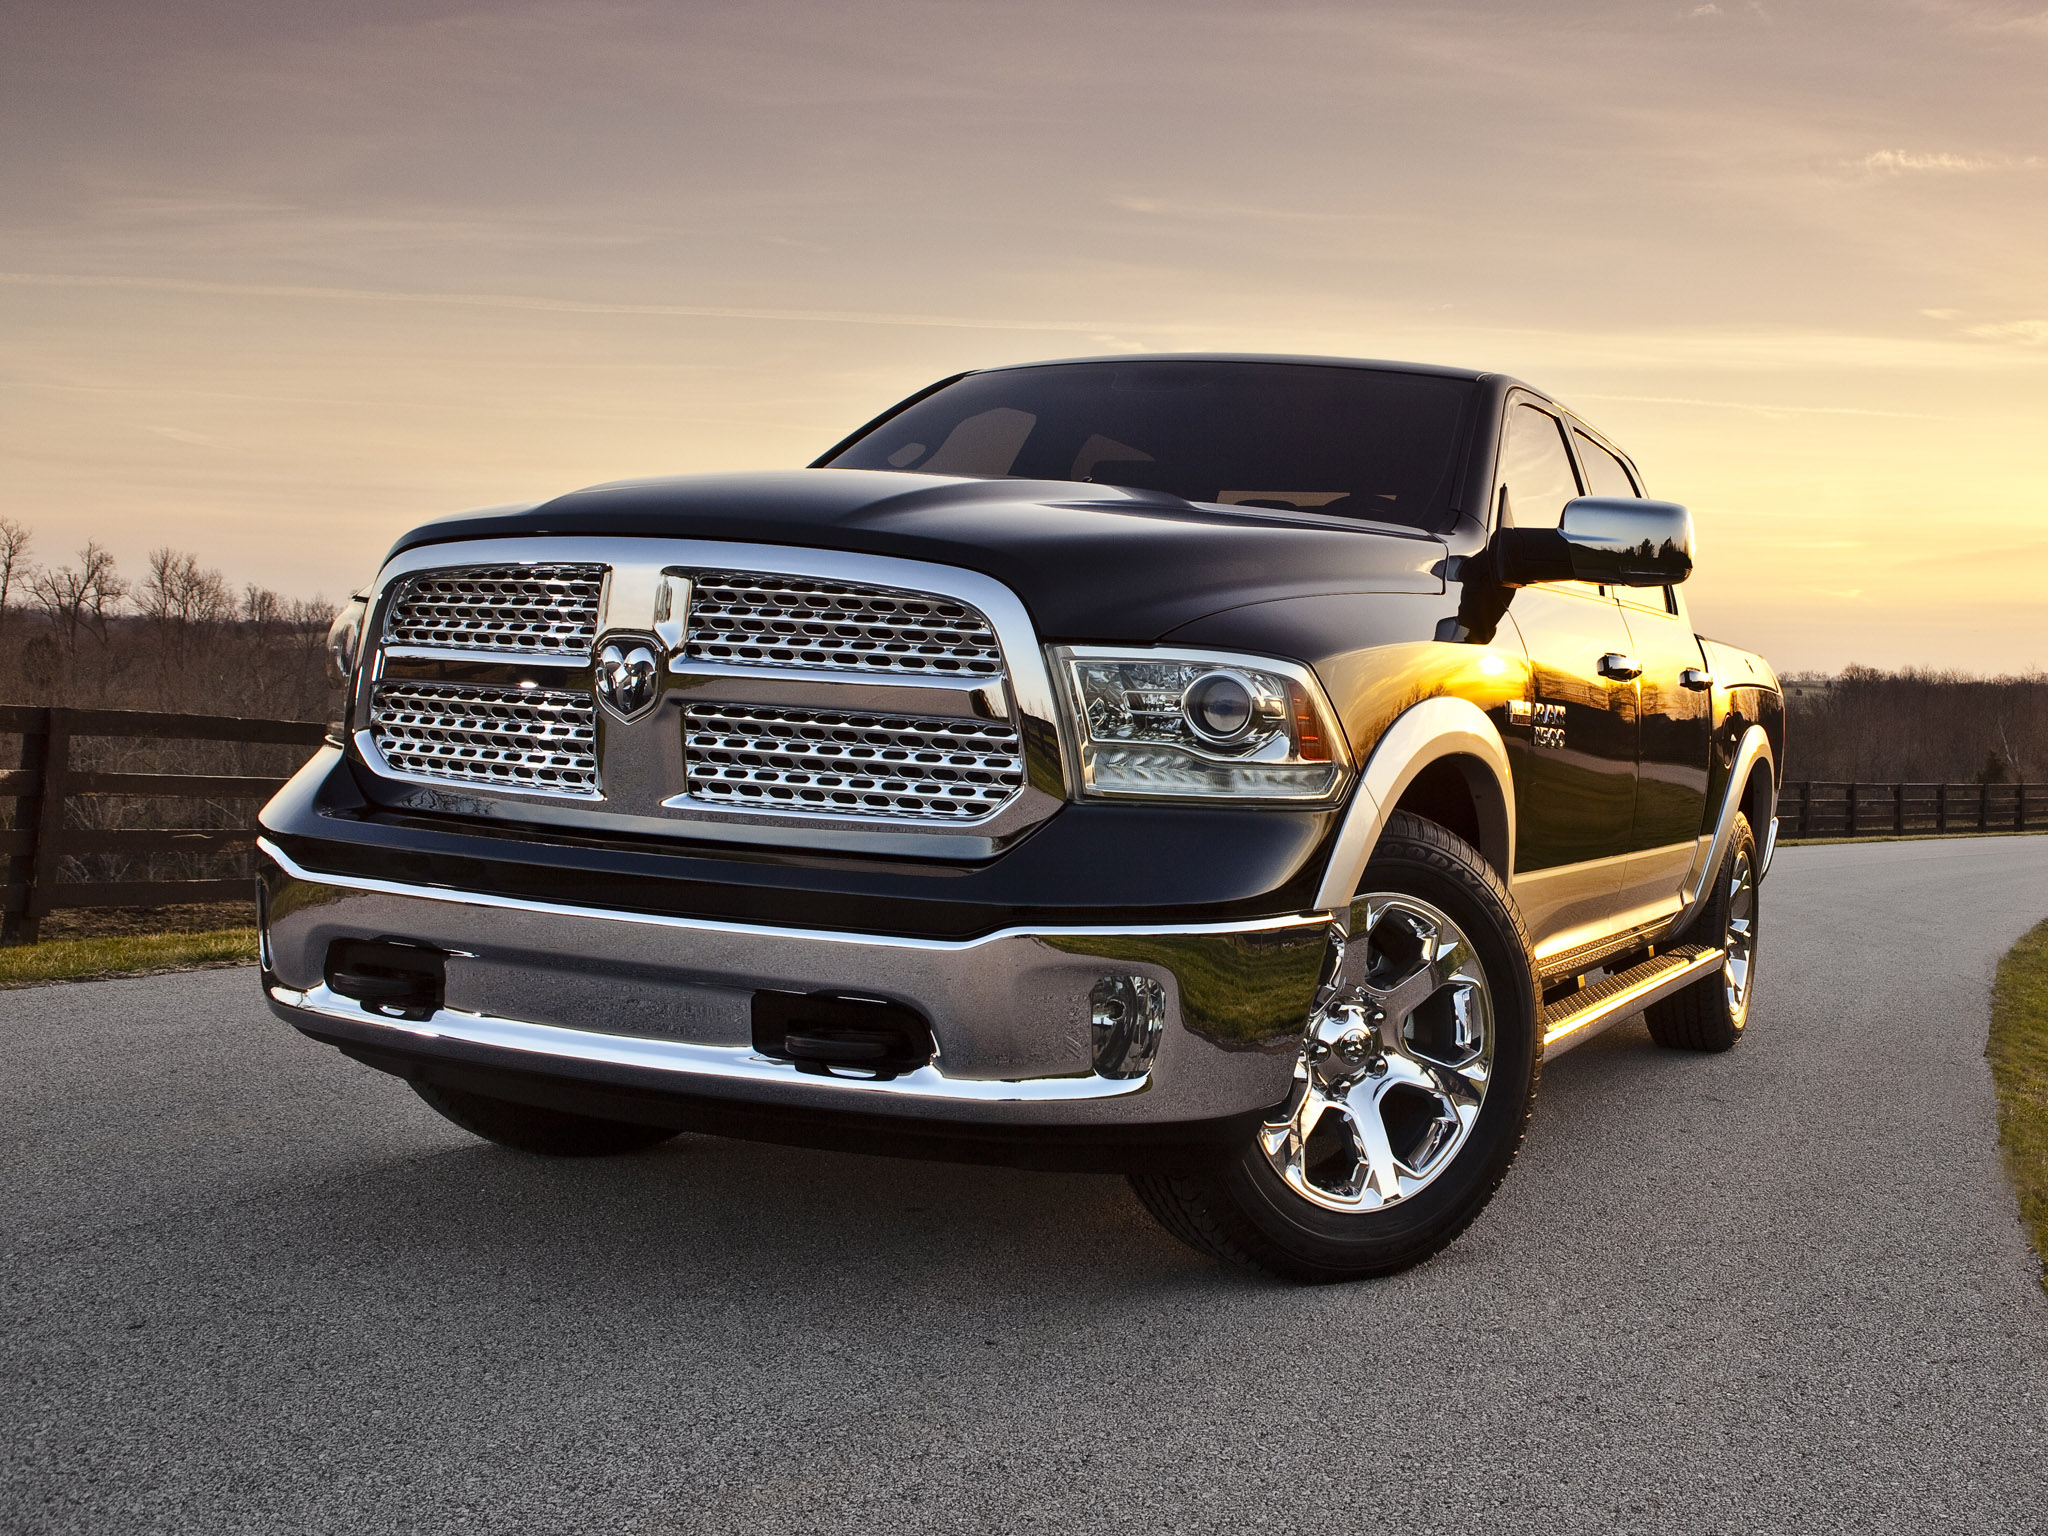 dodge ram 1500 laramie crew cab 2012 dodge ram 1500 laramie crew cab. Black Bedroom Furniture Sets. Home Design Ideas